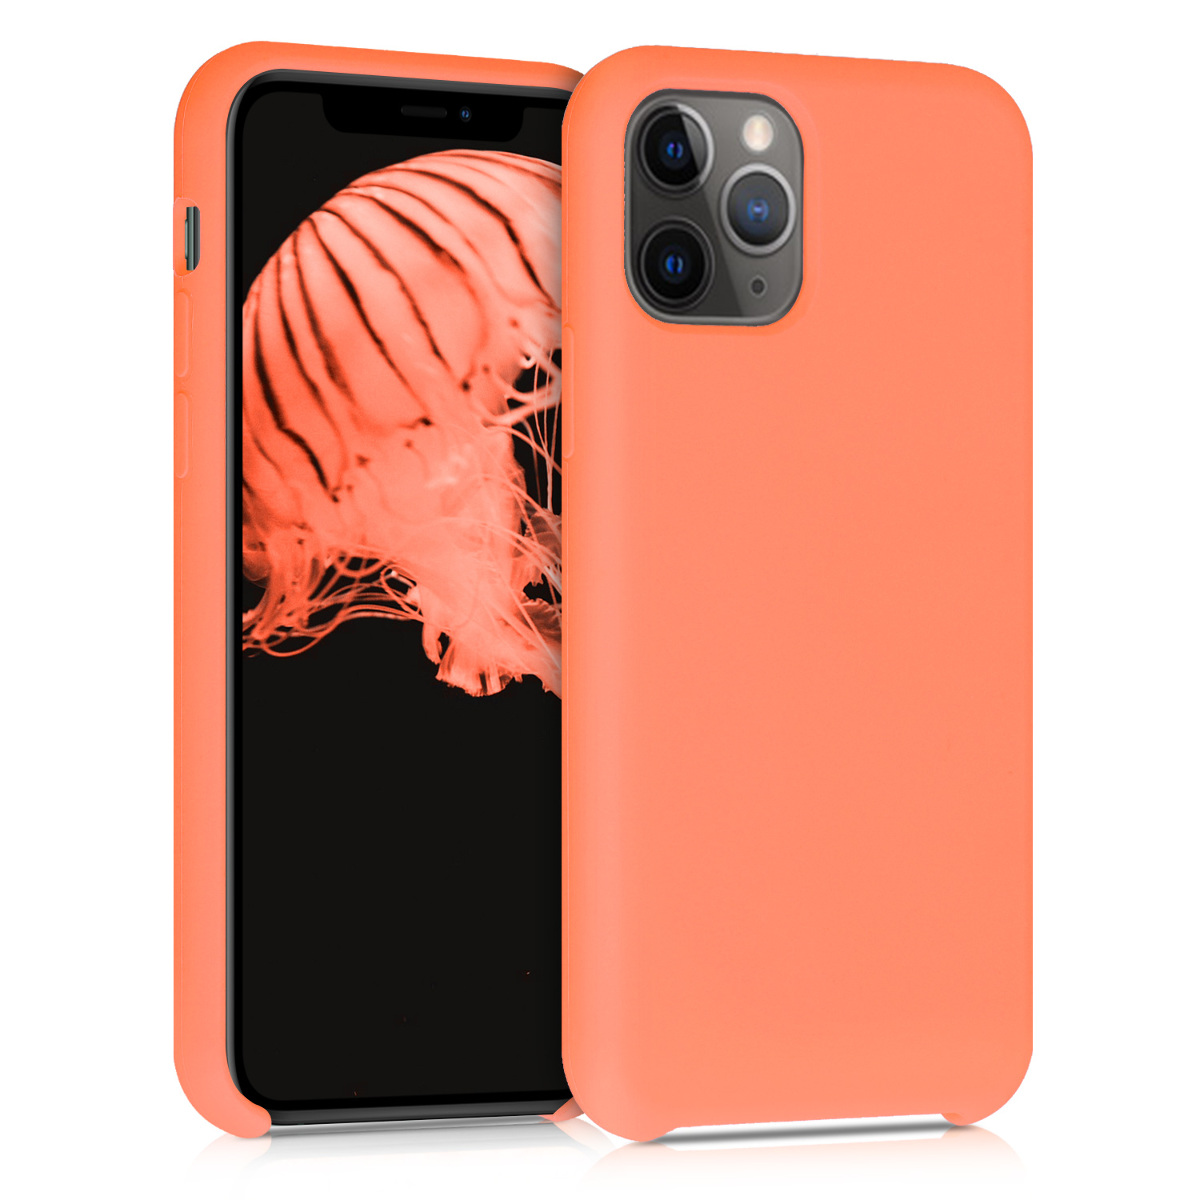 KW Θήκη Σιλικόνης Apple iPhone 11 Pro - Soft Flexible Rubber Protective Cover - Papaya (49726.144)